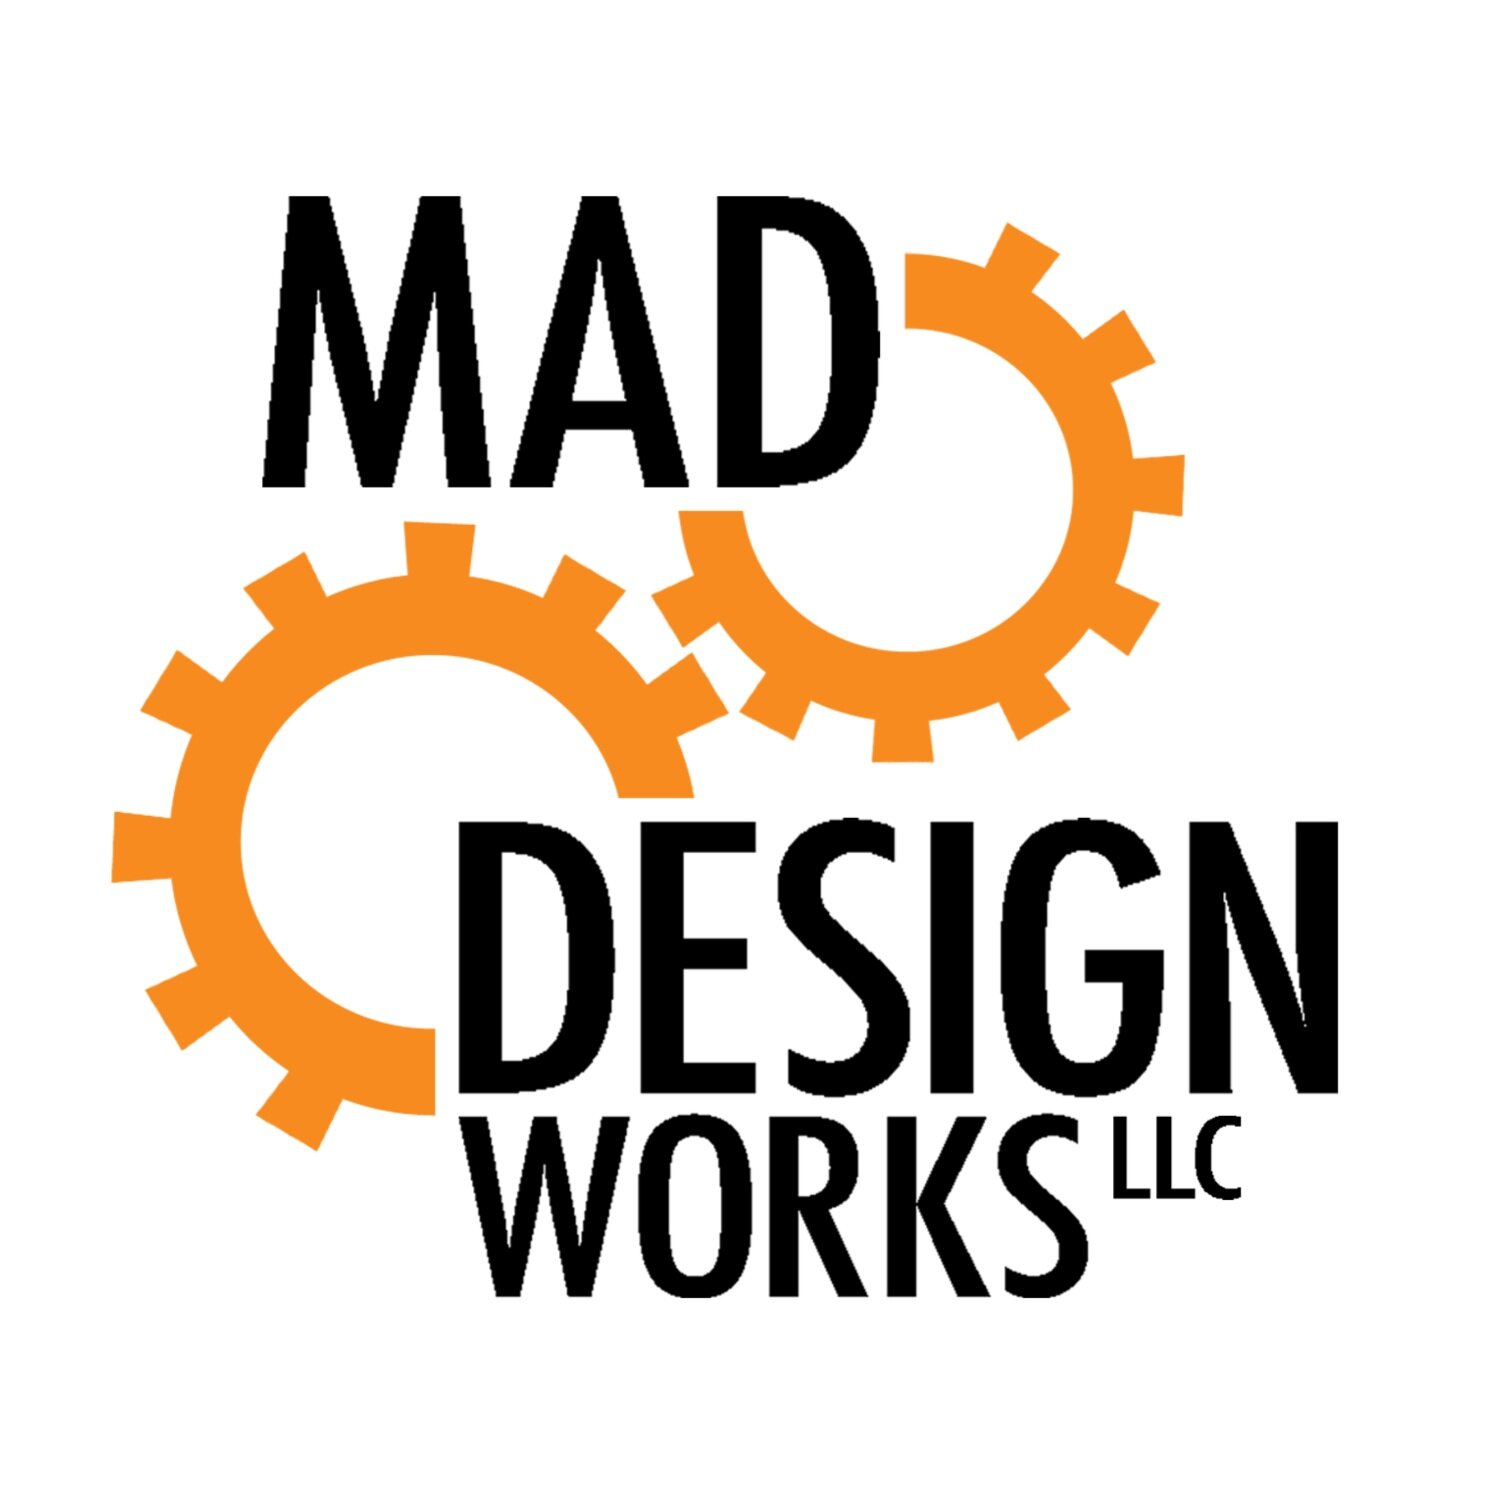 Photo of logo for Mad Design Works LLC